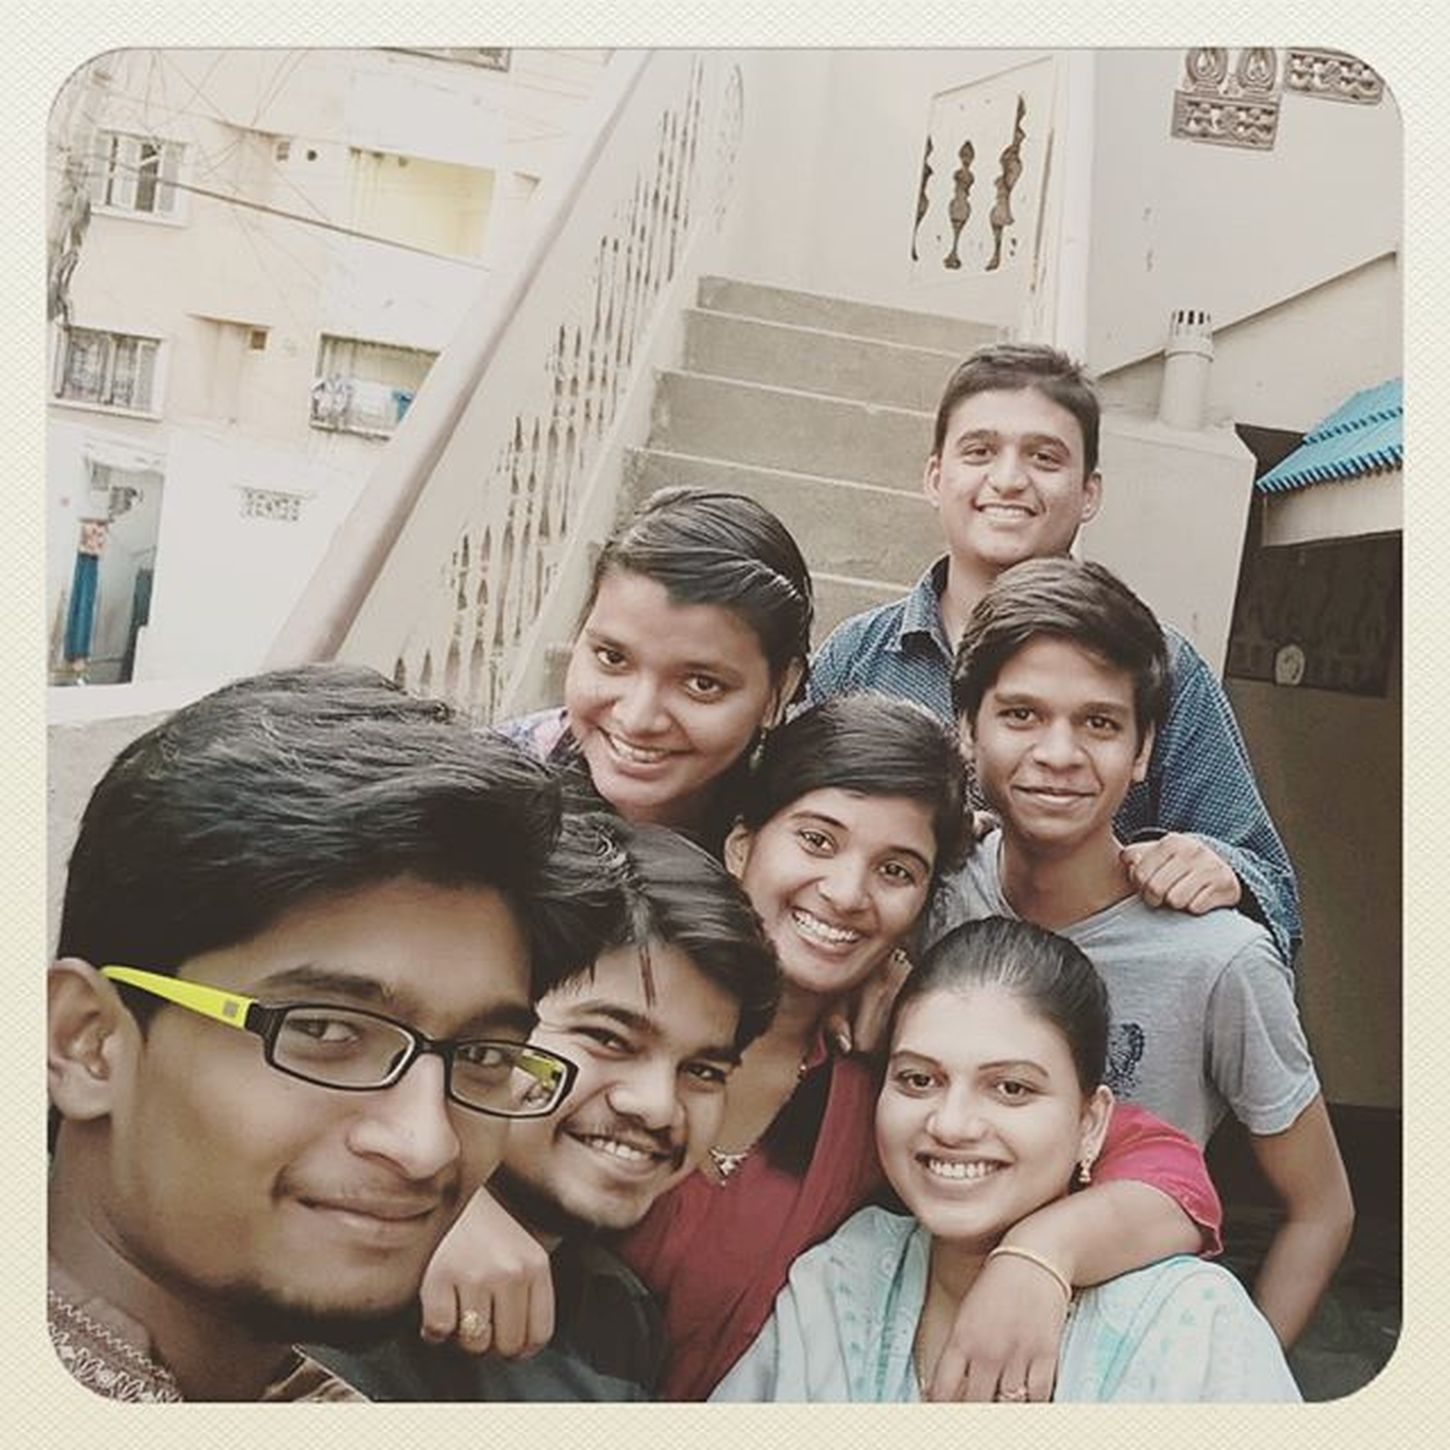 Funwithfamily Cousins  Madememories GoodTimes Cousinslove Rocking Finallyaselfietogether Cool 😎😉😍